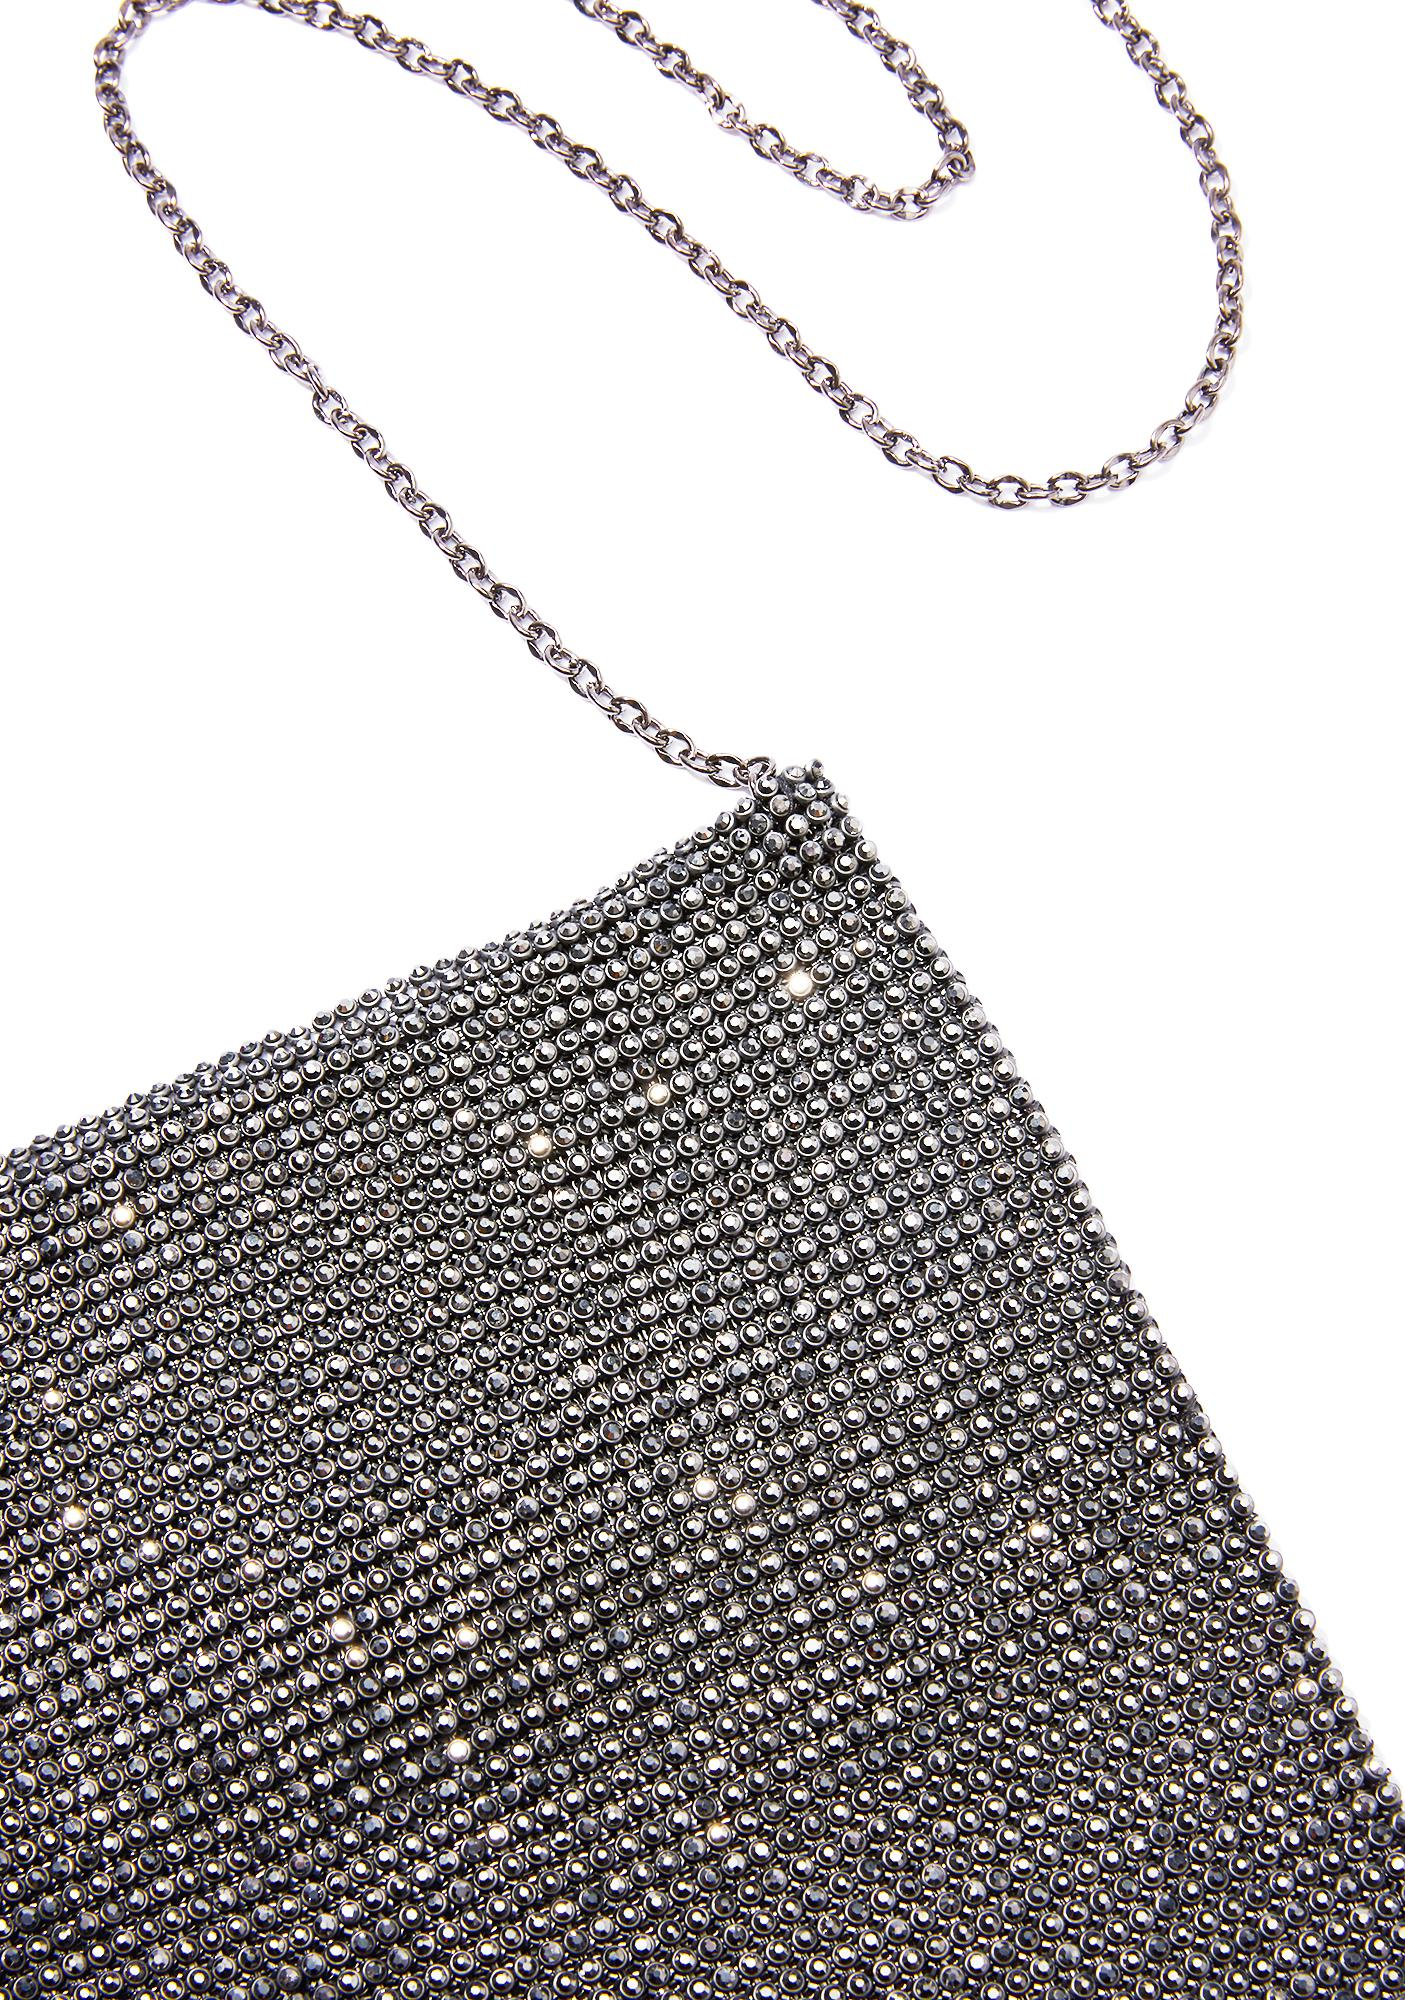 Fraiser Sterling Exclusive After Party Rhinestone Purse